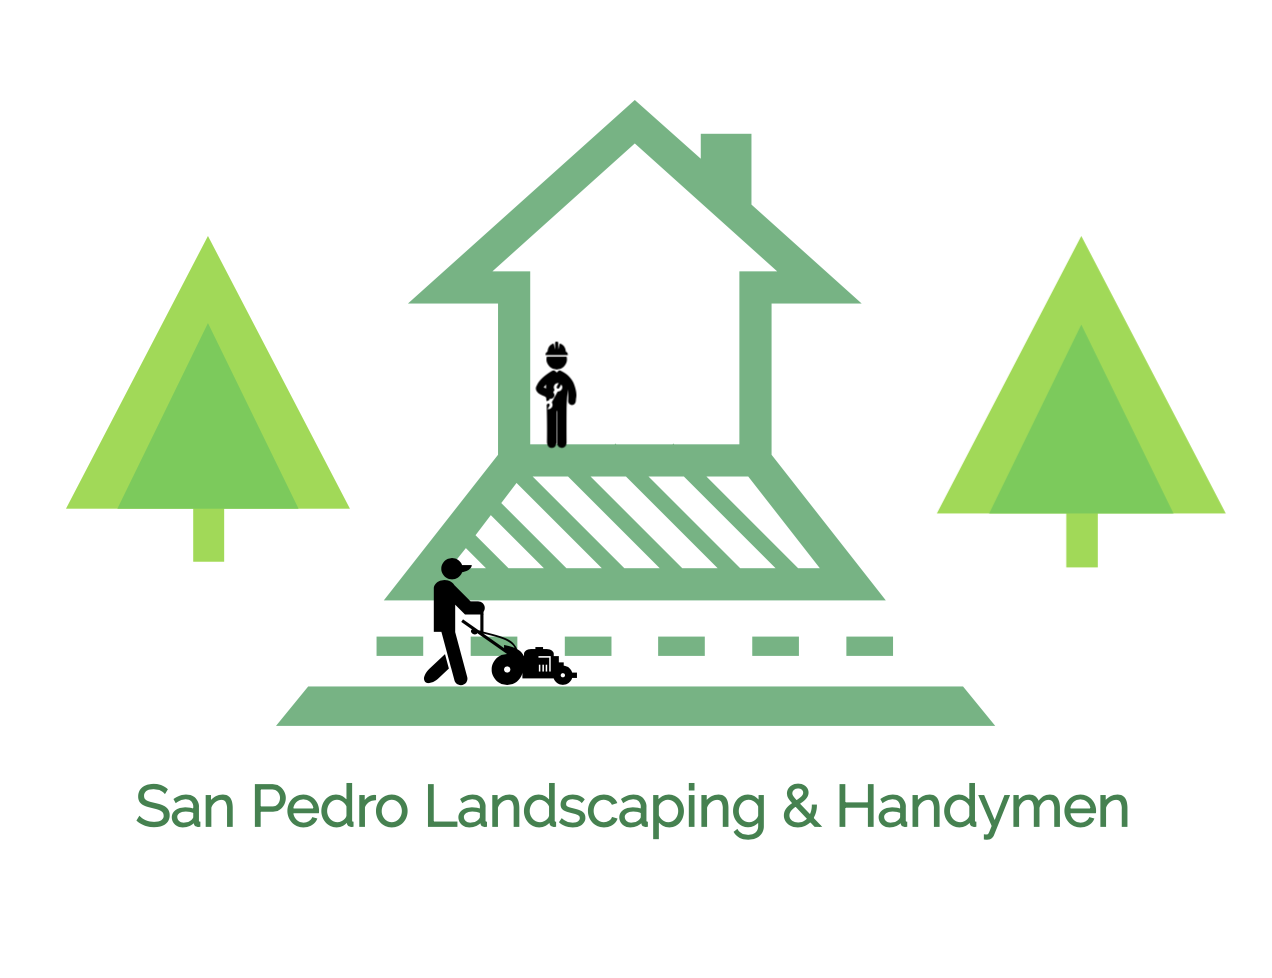 Torres Landscaping and Handymen image